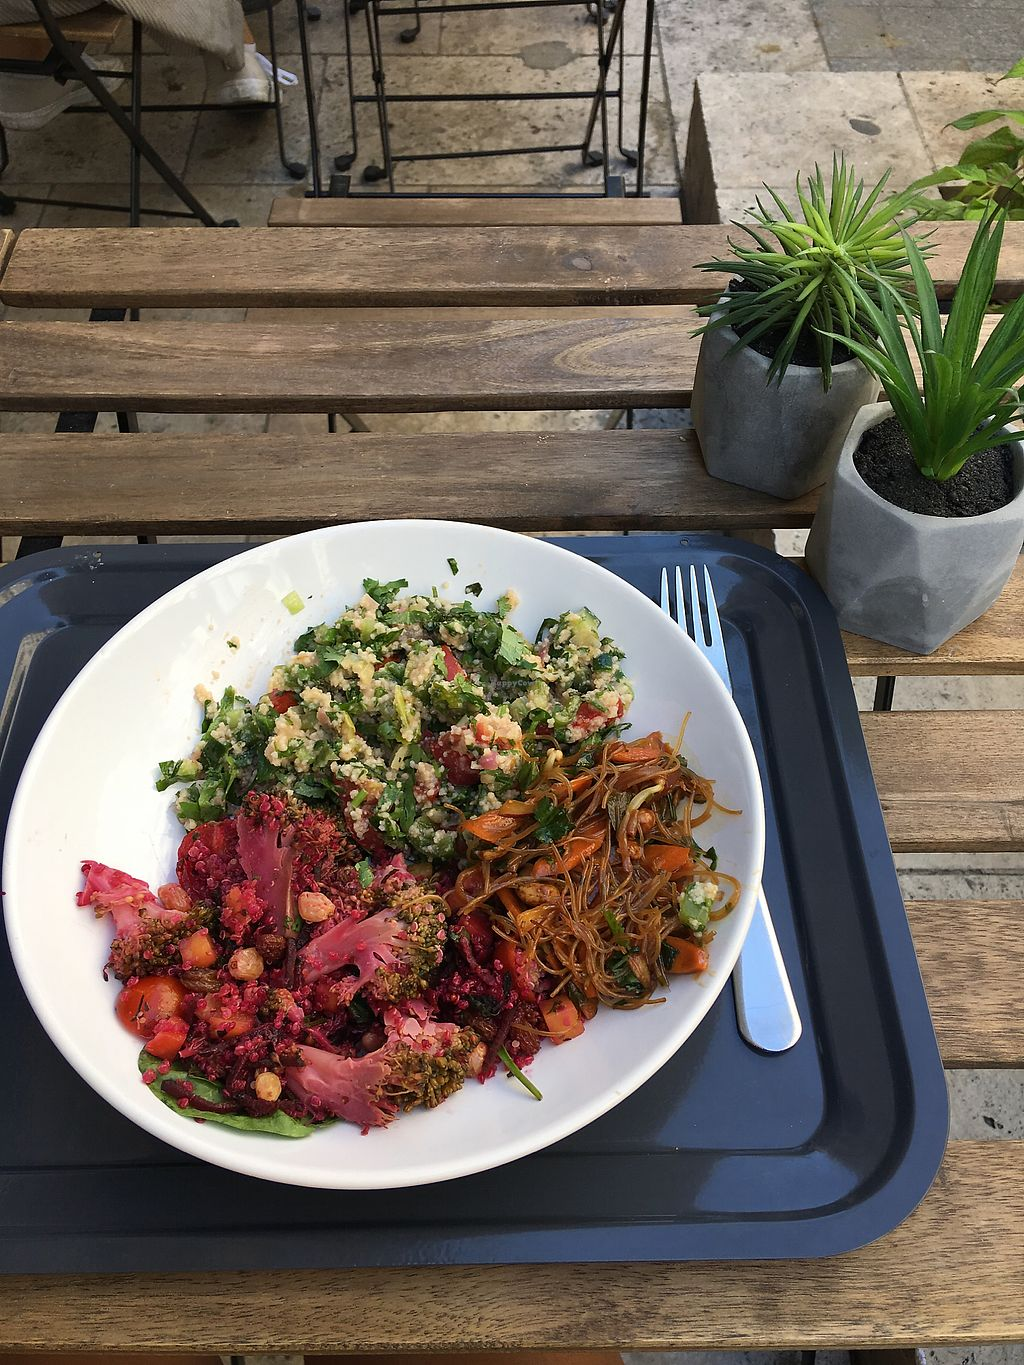 """Photo of Oh My Green  by <a href=""""/members/profile/DanielaCavallaro"""">DanielaCavallaro</a> <br/>SALAD BOWL <br/> September 1, 2017  - <a href='/contact/abuse/image/88811/299642'>Report</a>"""